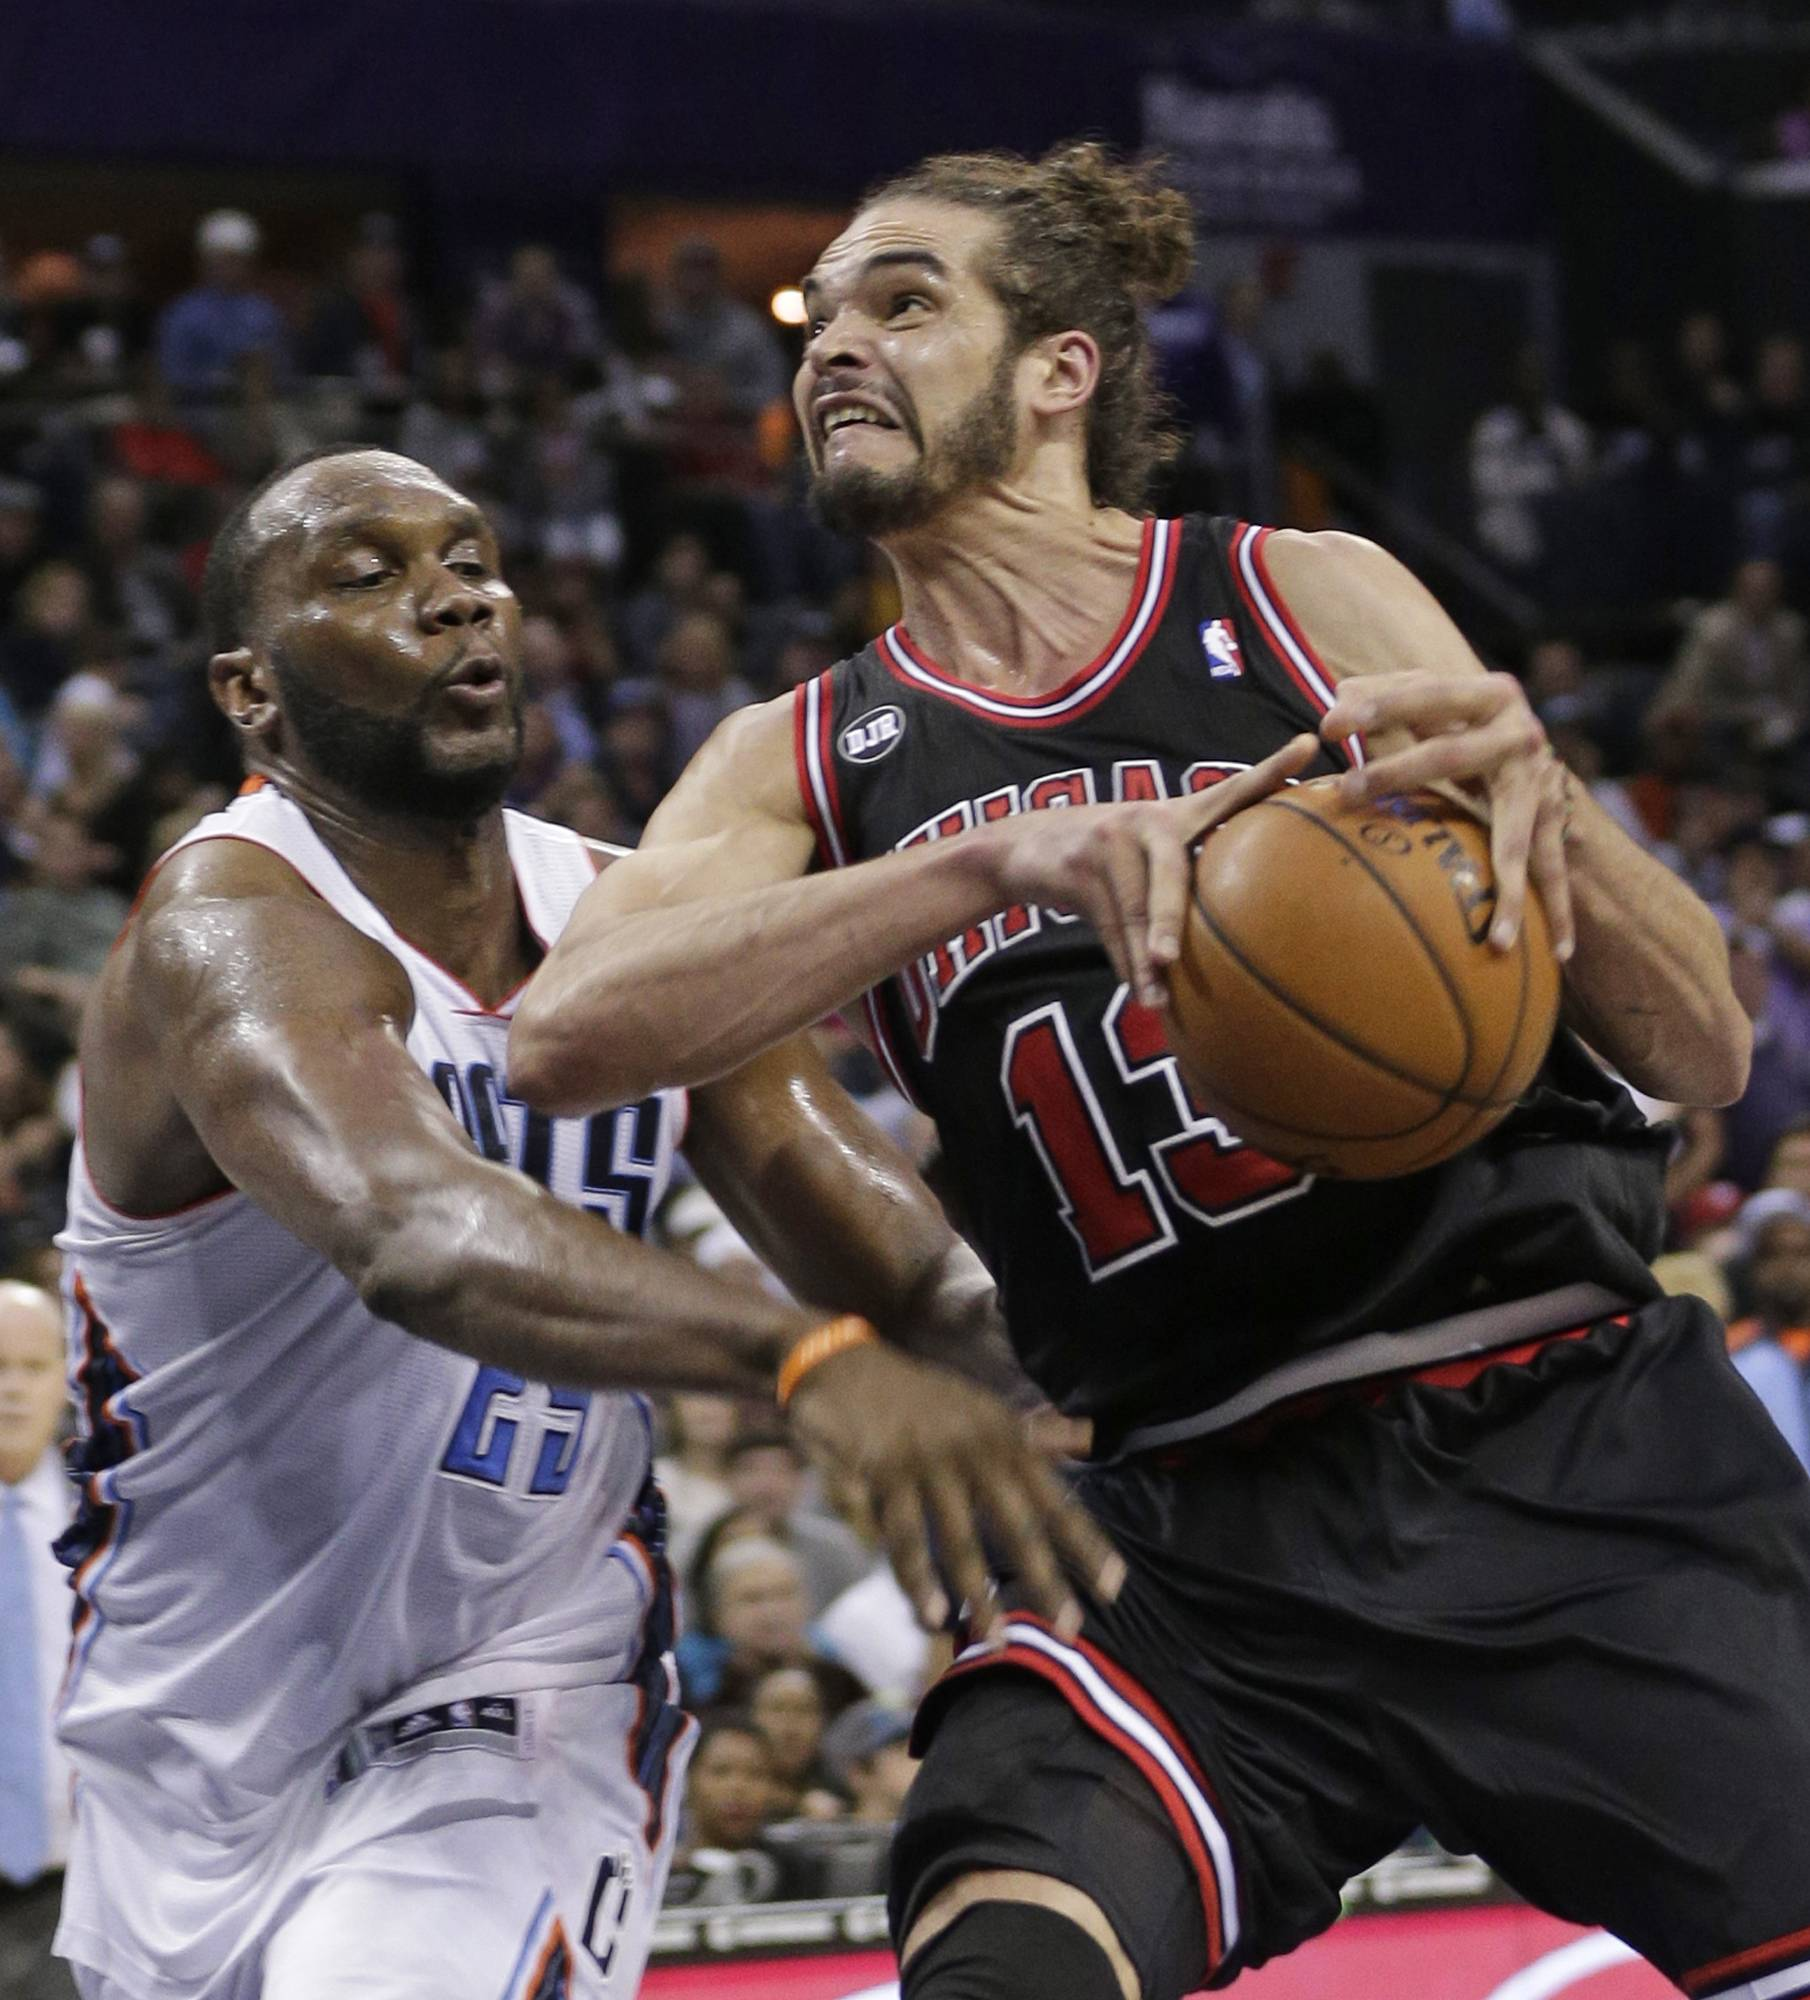 The Bobcats' Al Jefferson strips the ball from the Bulls' Joakim Noah during the second half of Wednesday night's regular-season finale. The Bulls finished 48-34 with the loss.